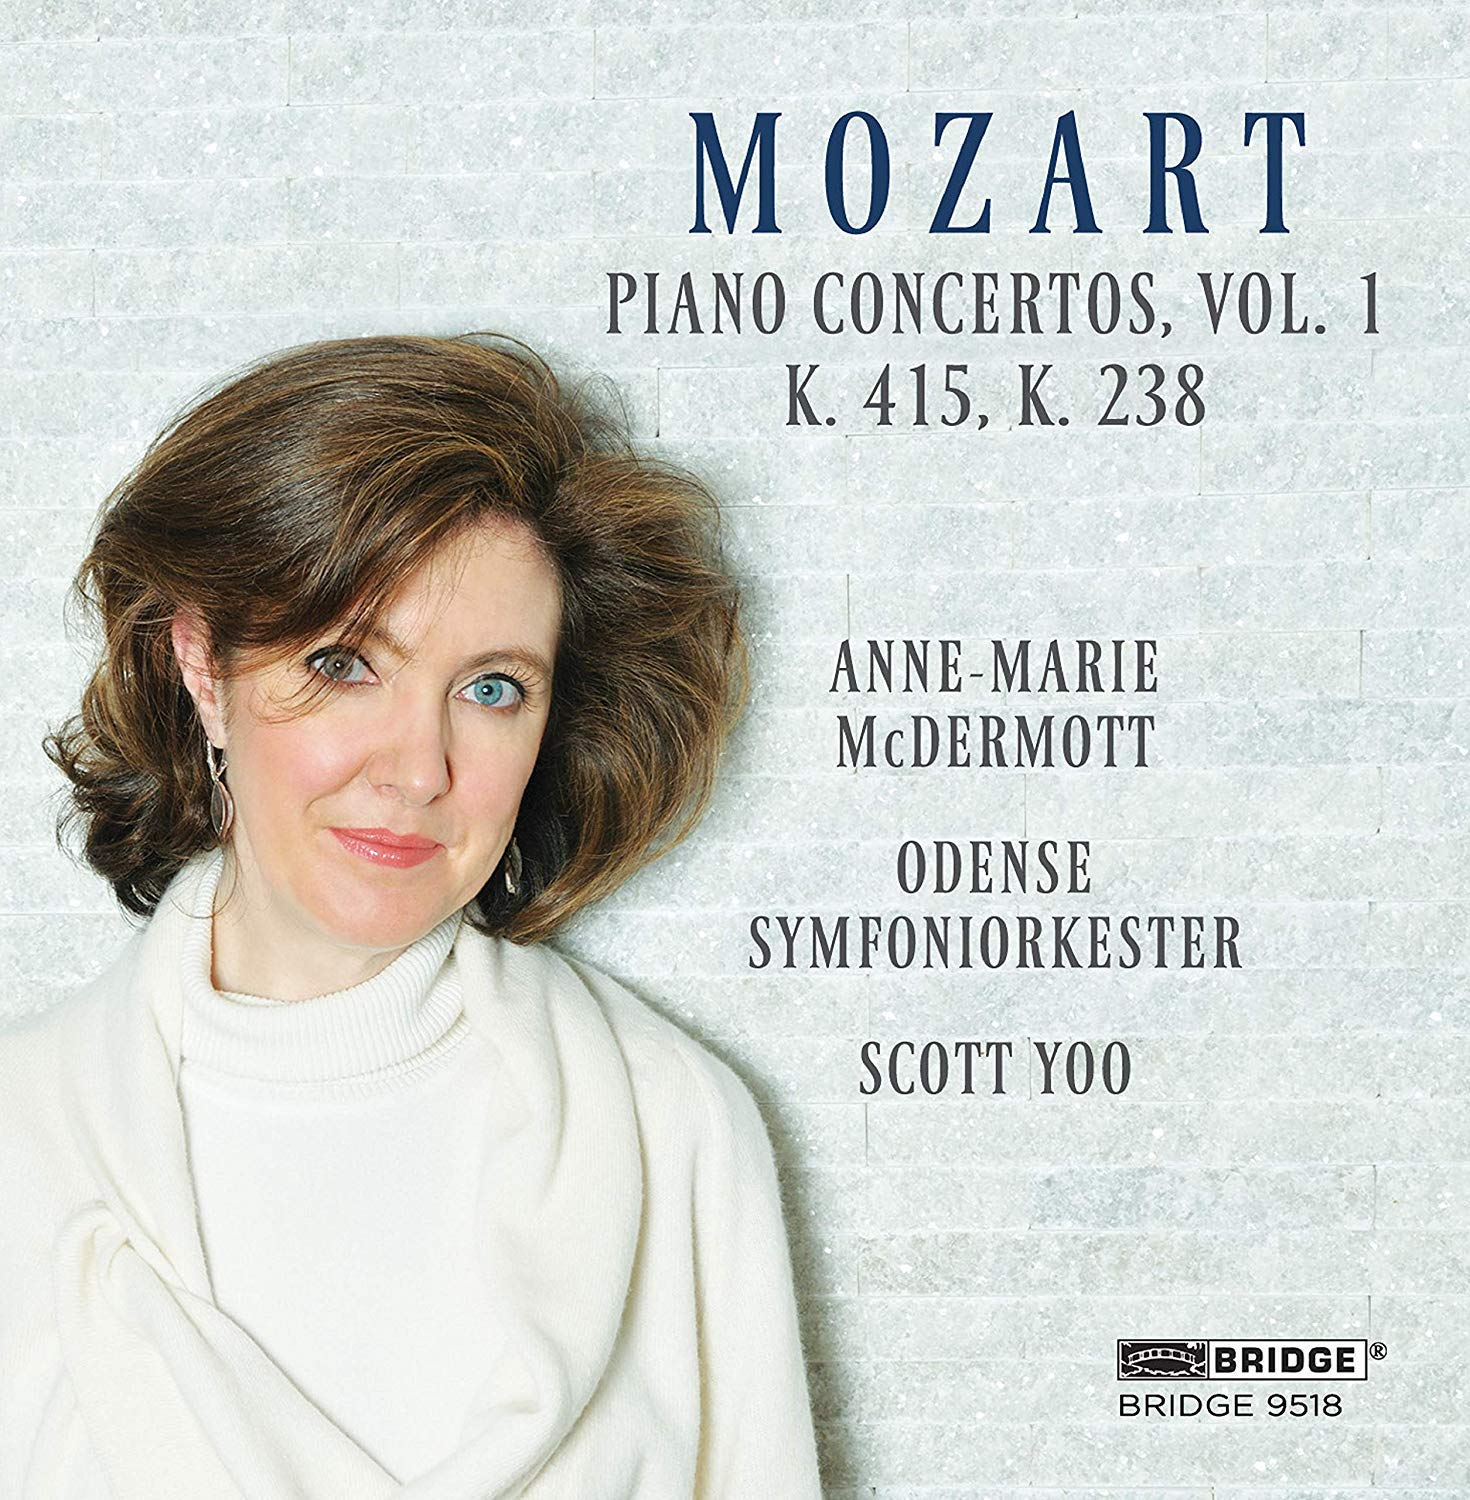 Review of MOZART Piano Concertos Vol 1 (Anne-Marie McDermott)